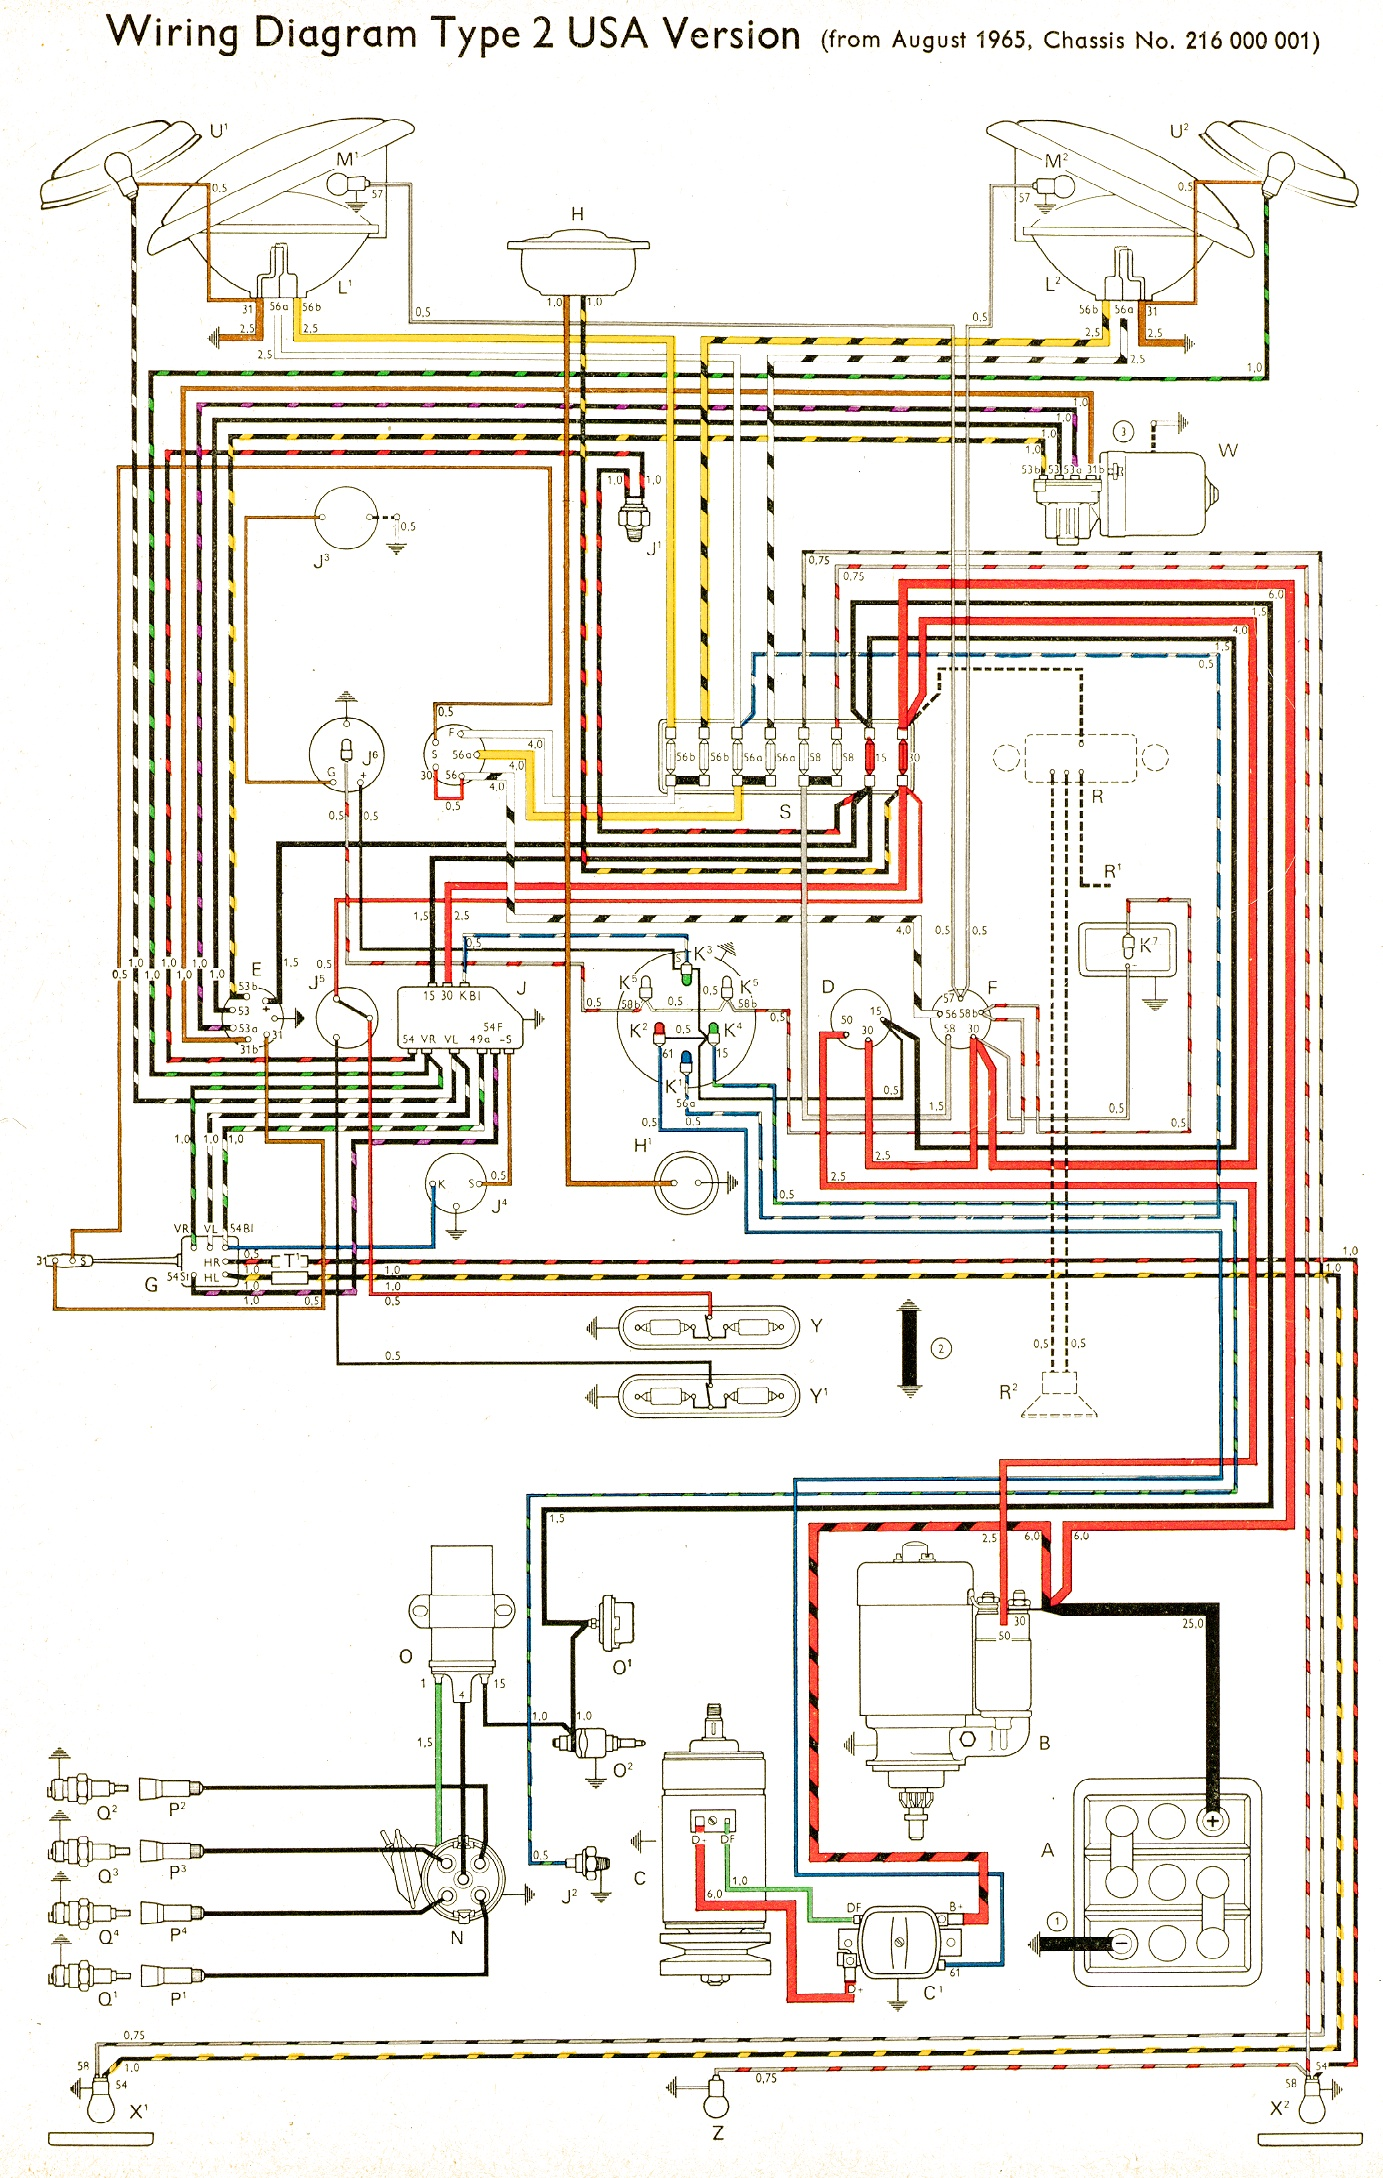 Wiring in addition Wiringt1 together with 1955 Ford Thunderbird Color Wiring Diagram likewise Wiringharnessbus furthermore Dodge Paint Code Location. on 1965 vw wiring diagram